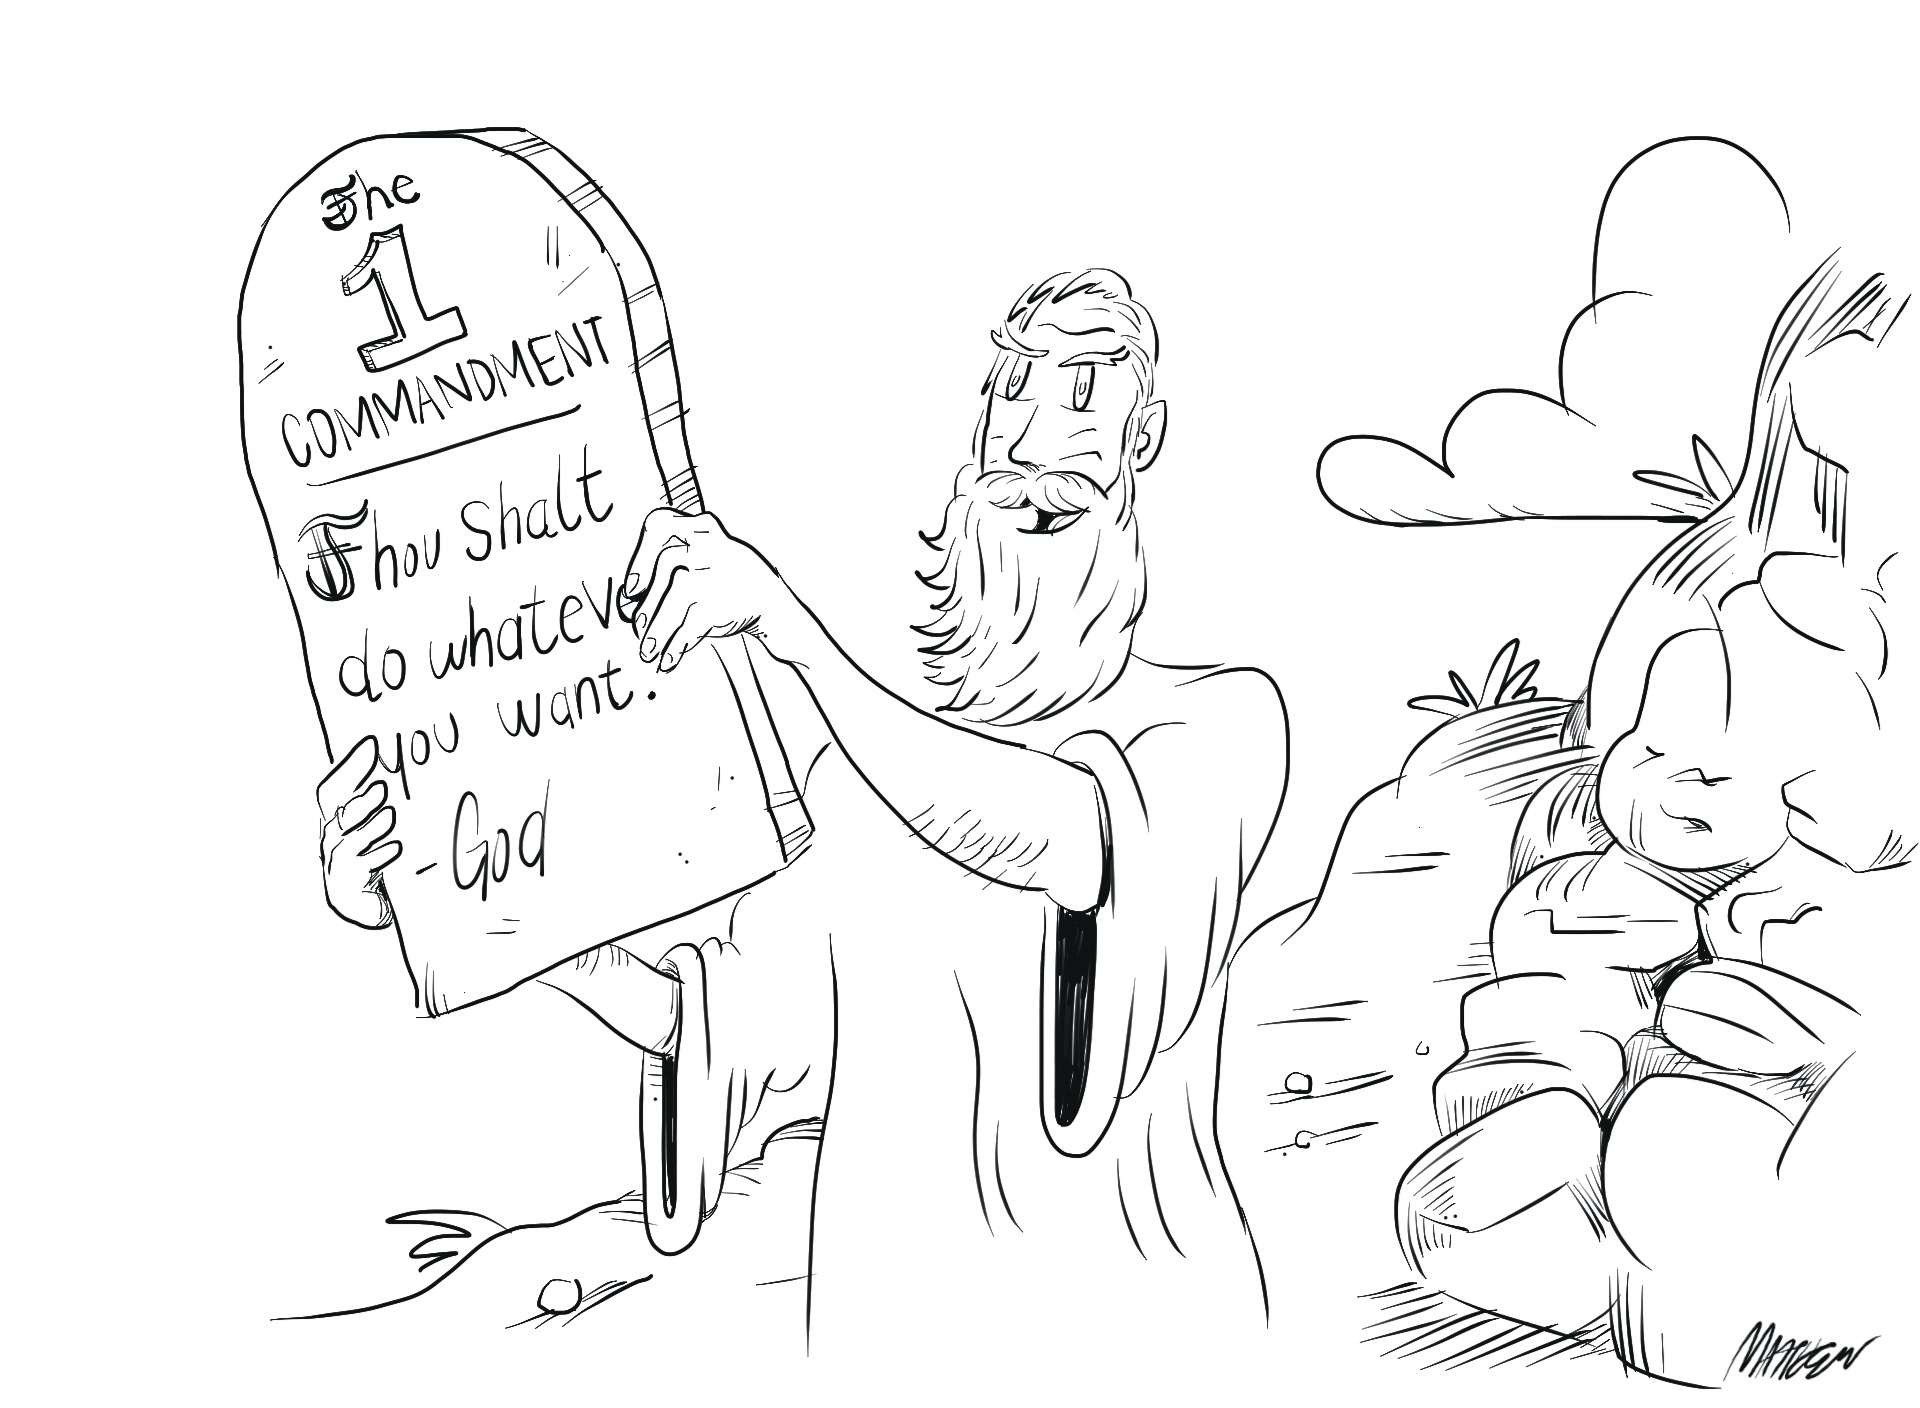 illustration of moses holding up an ammendment to the first commandment on an original tablet.